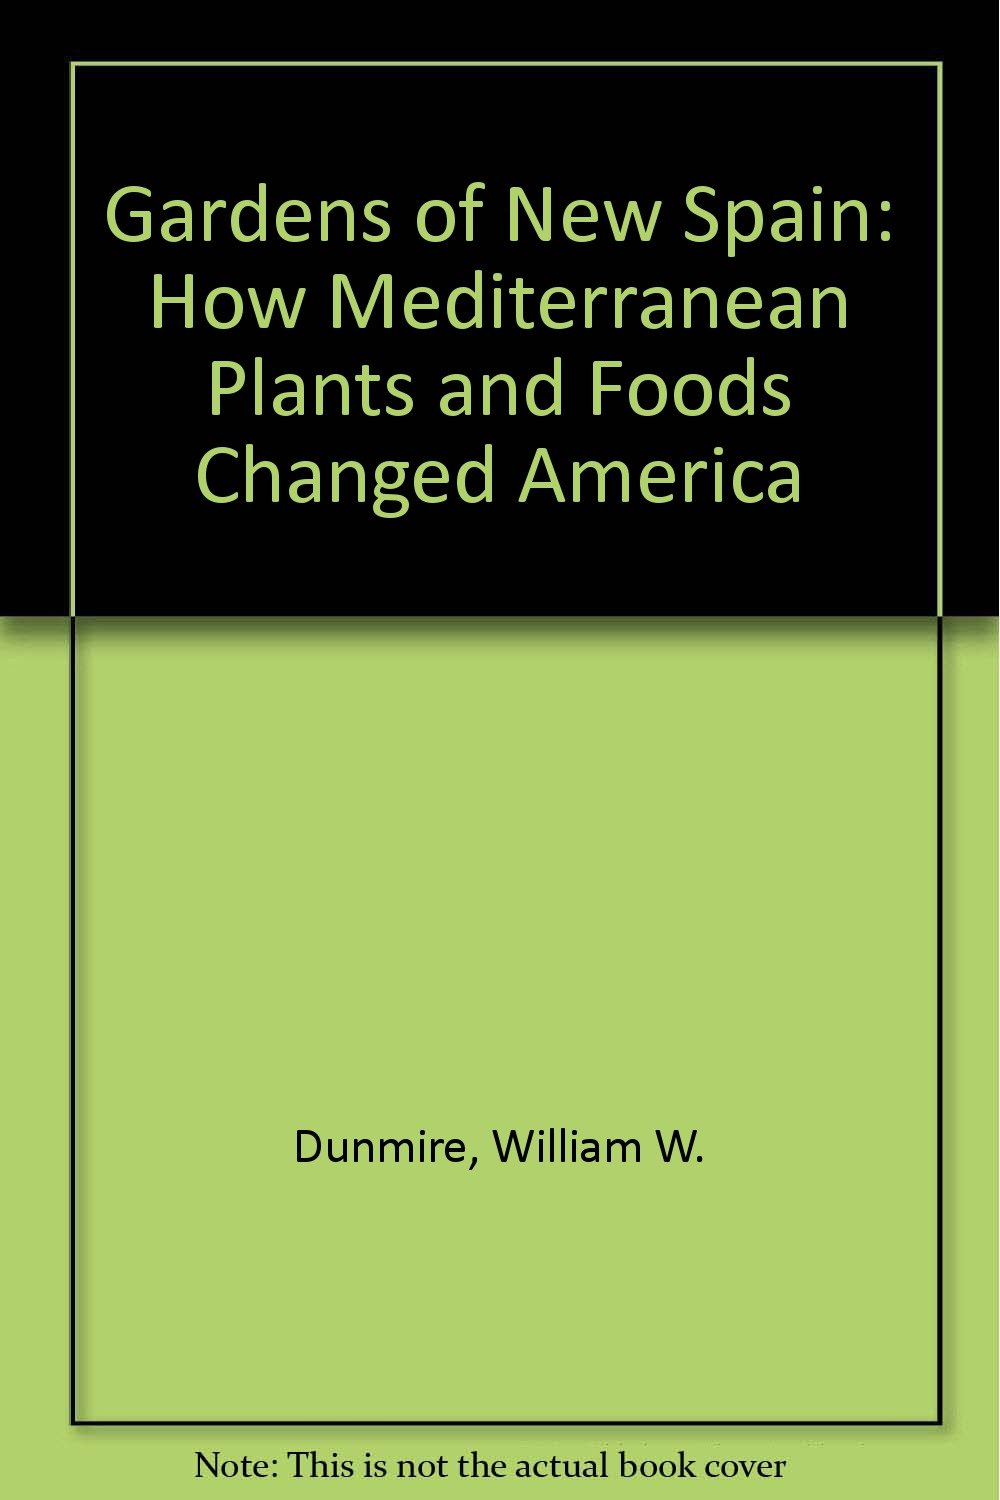 Download Gardens of New Spain: How Mediterranean Plants and Foods Changed America PDF